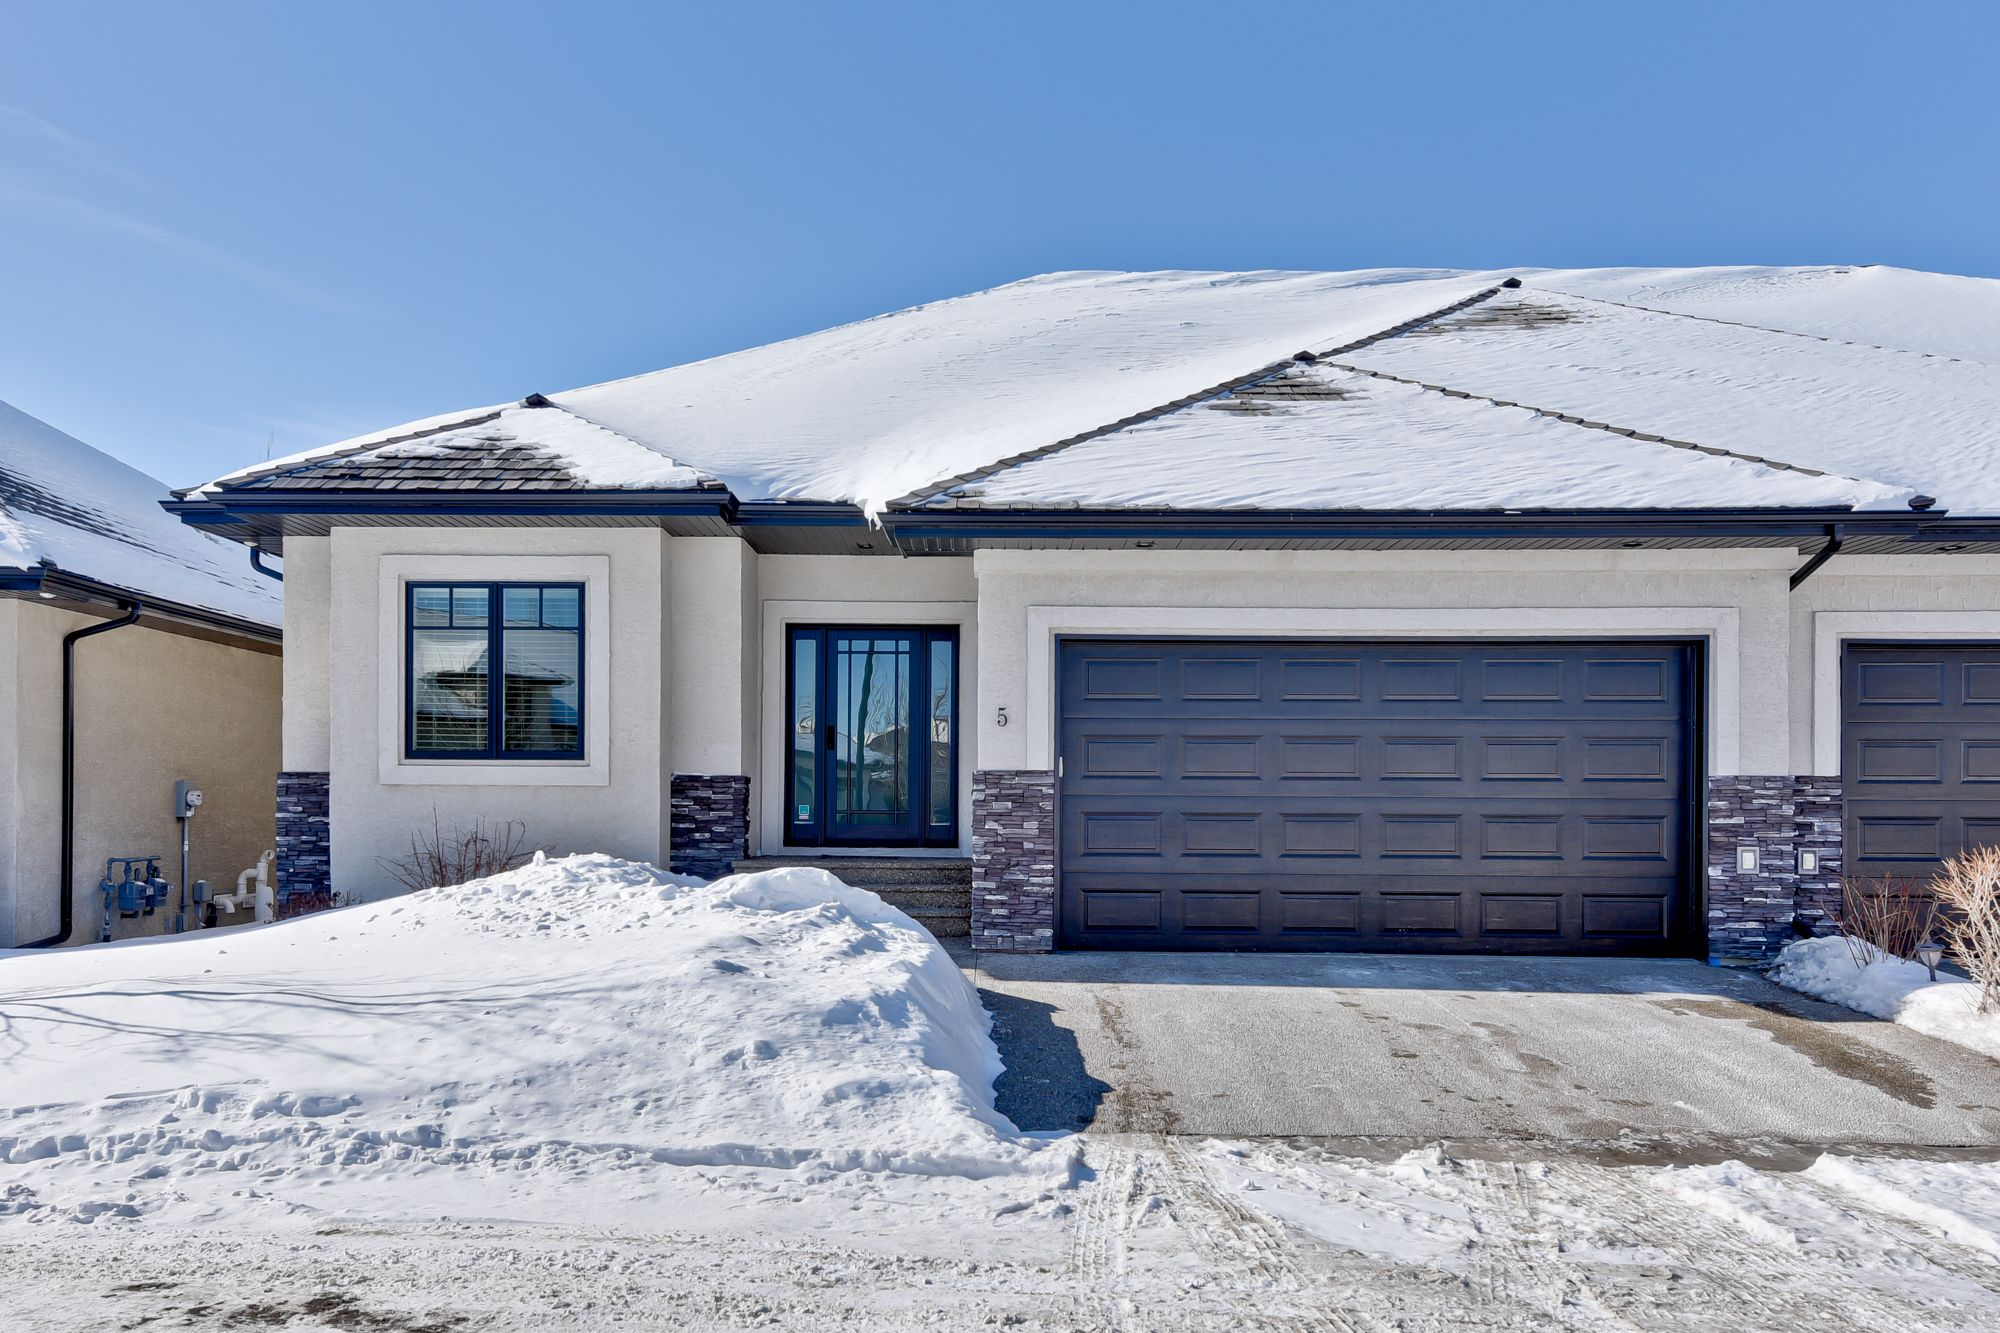 Main Photo: 5 4058 MacTaggart Drive: House for sale